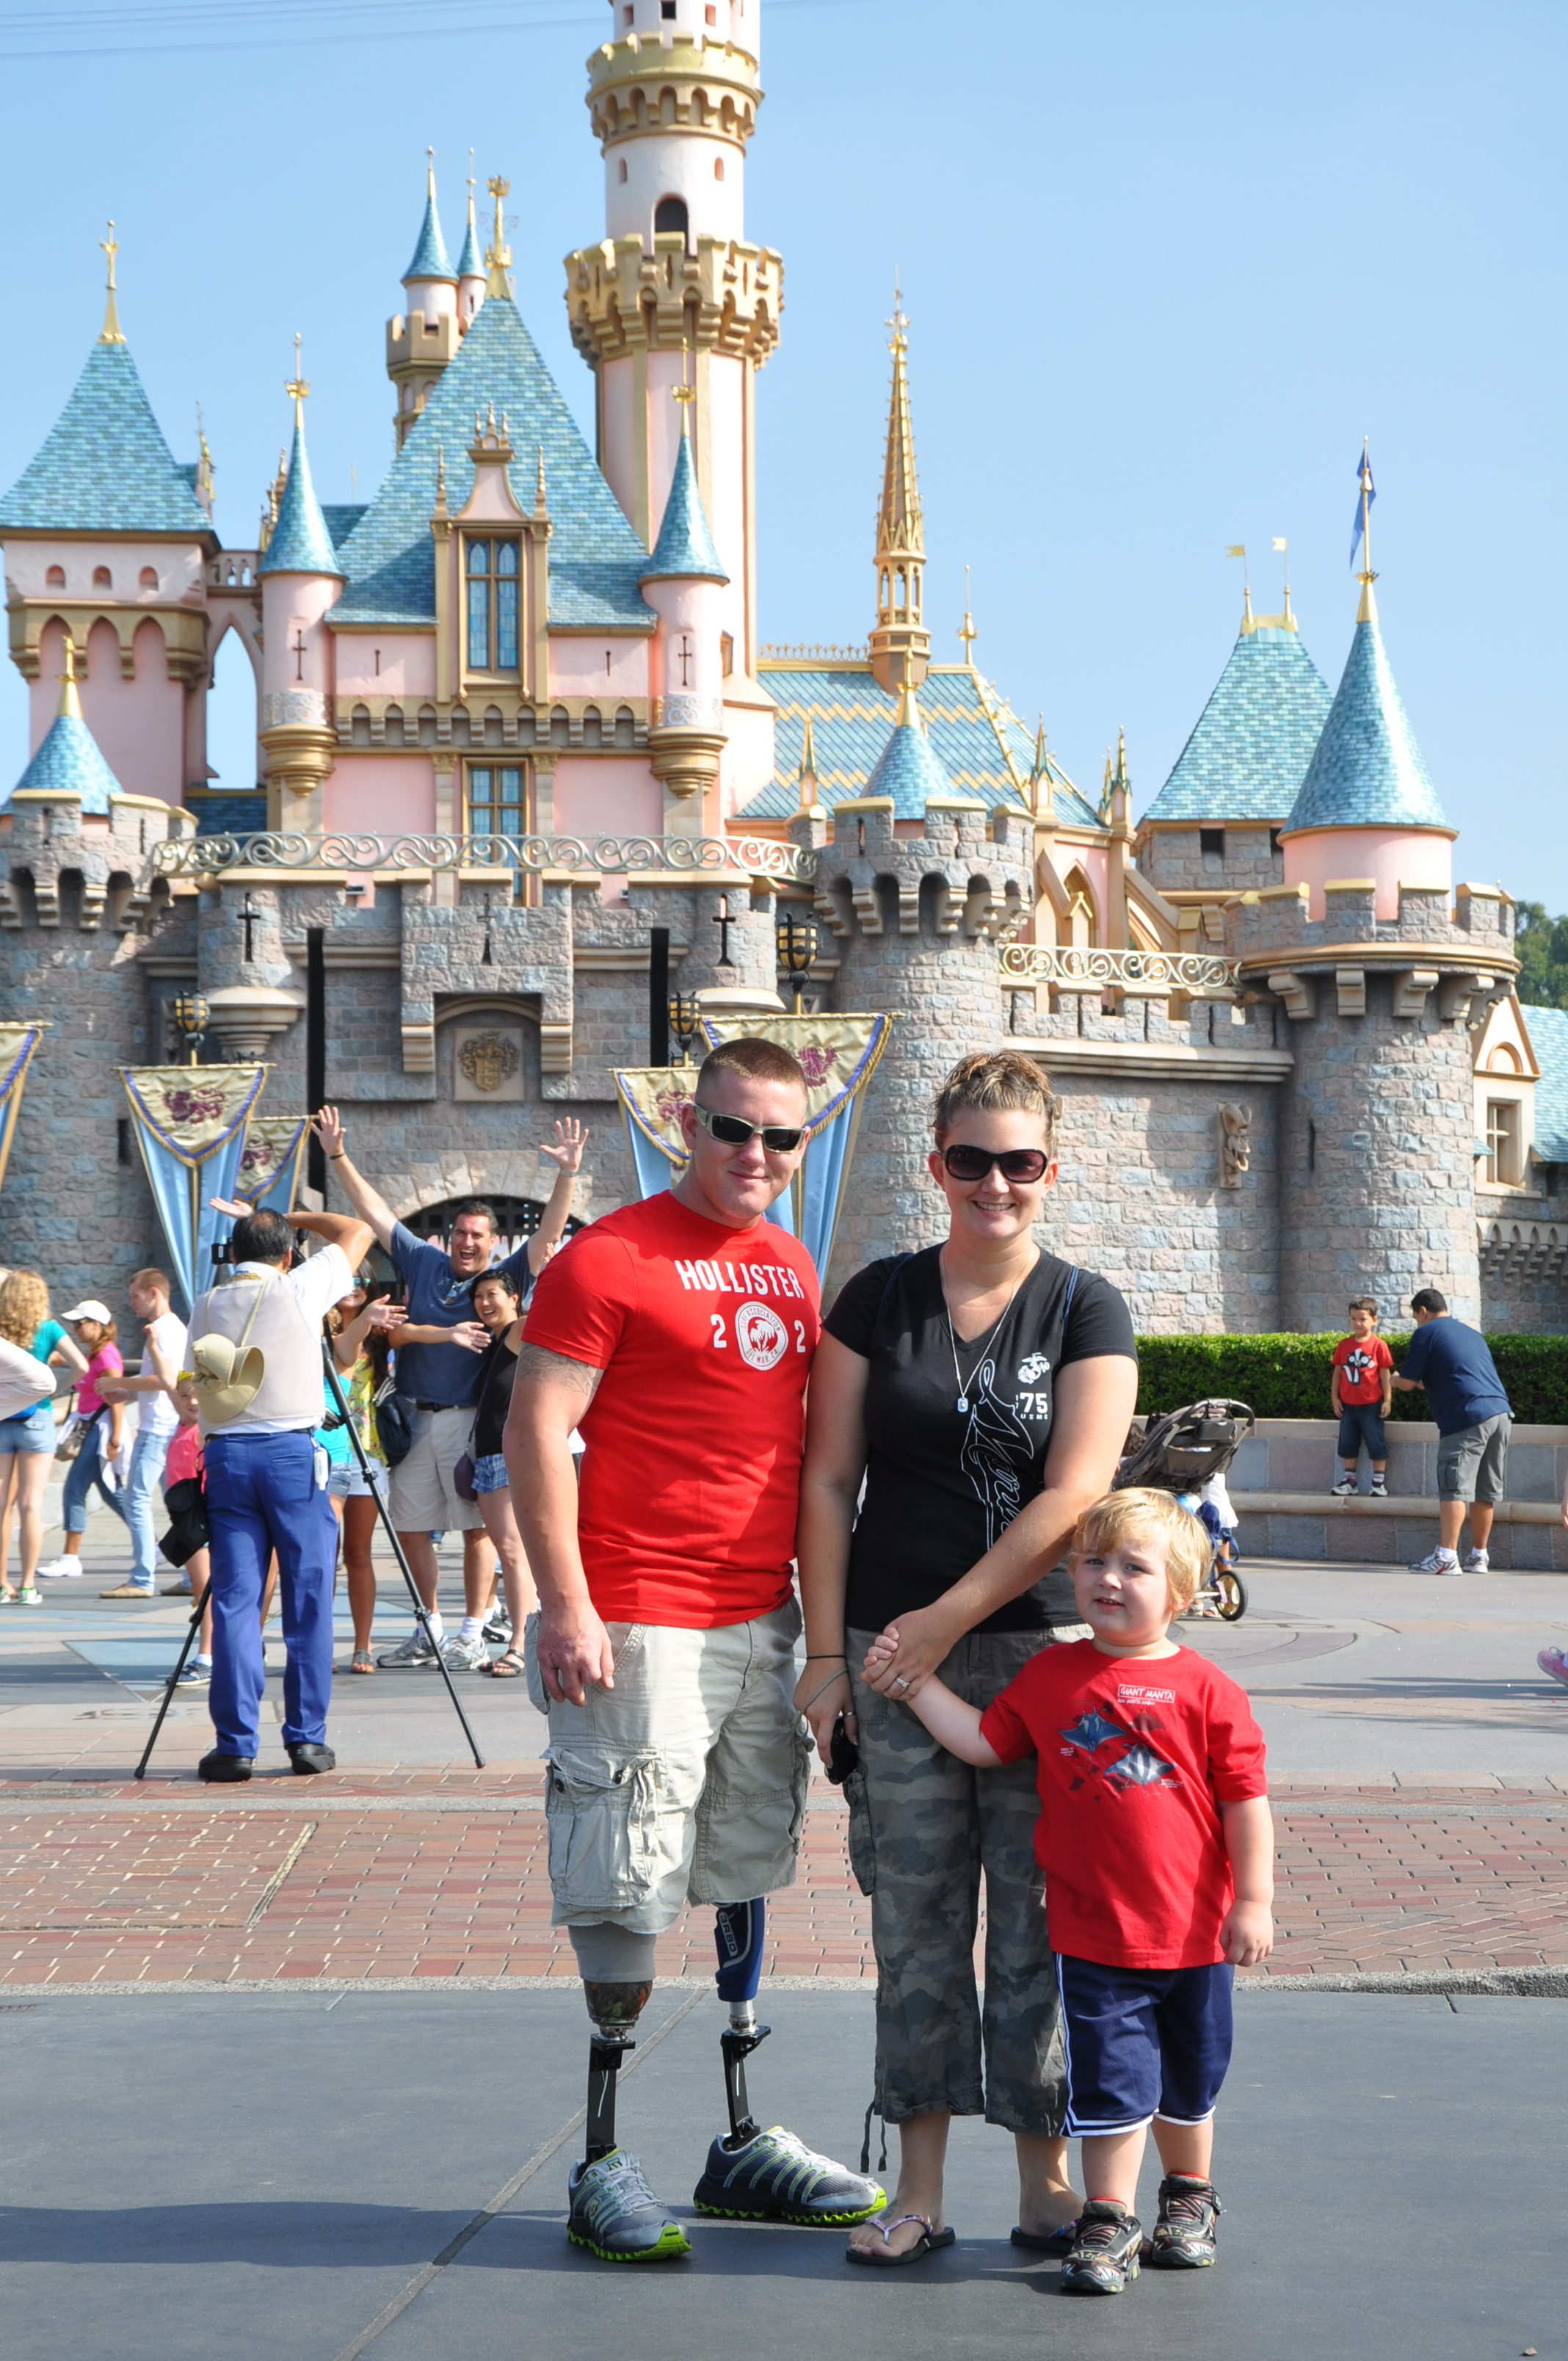 A military family reconnects during a retreat in Southern California. Here they are seen in front of the Disneyland Castle.